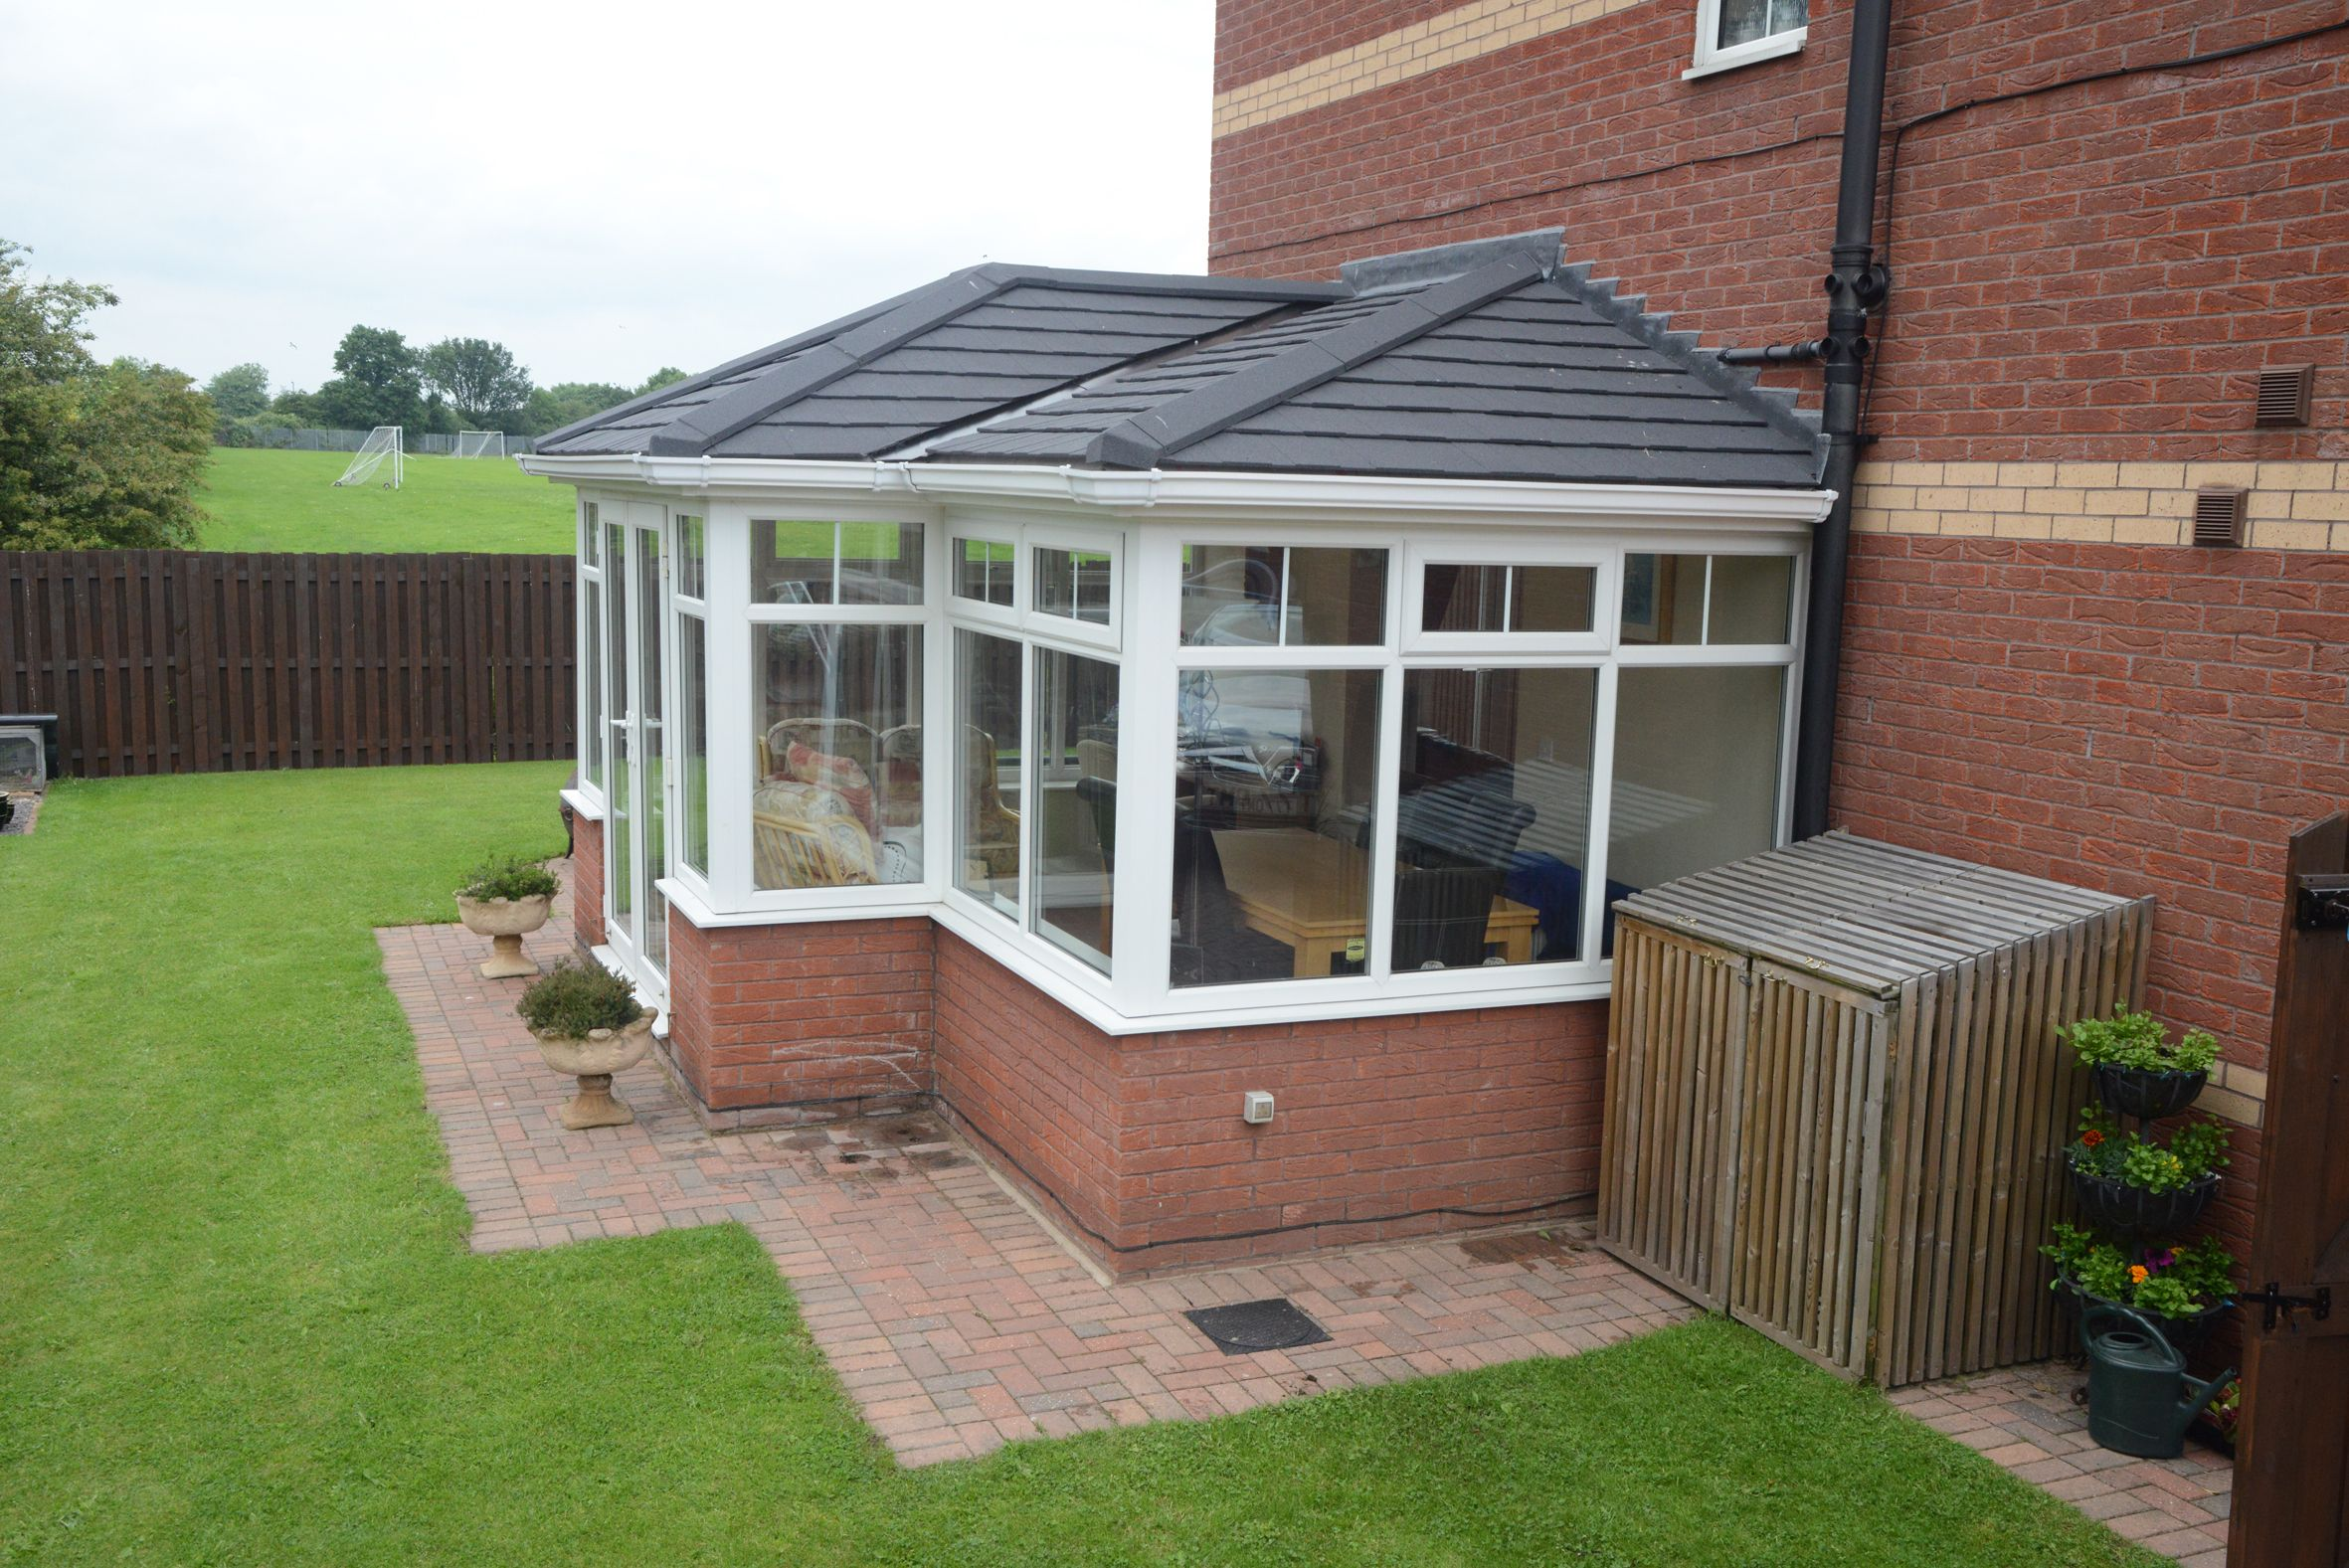 Replacement Conservatories And Conservatory Roofs Lifestyle Conservatory Roof Conservatory Prices Conservatory